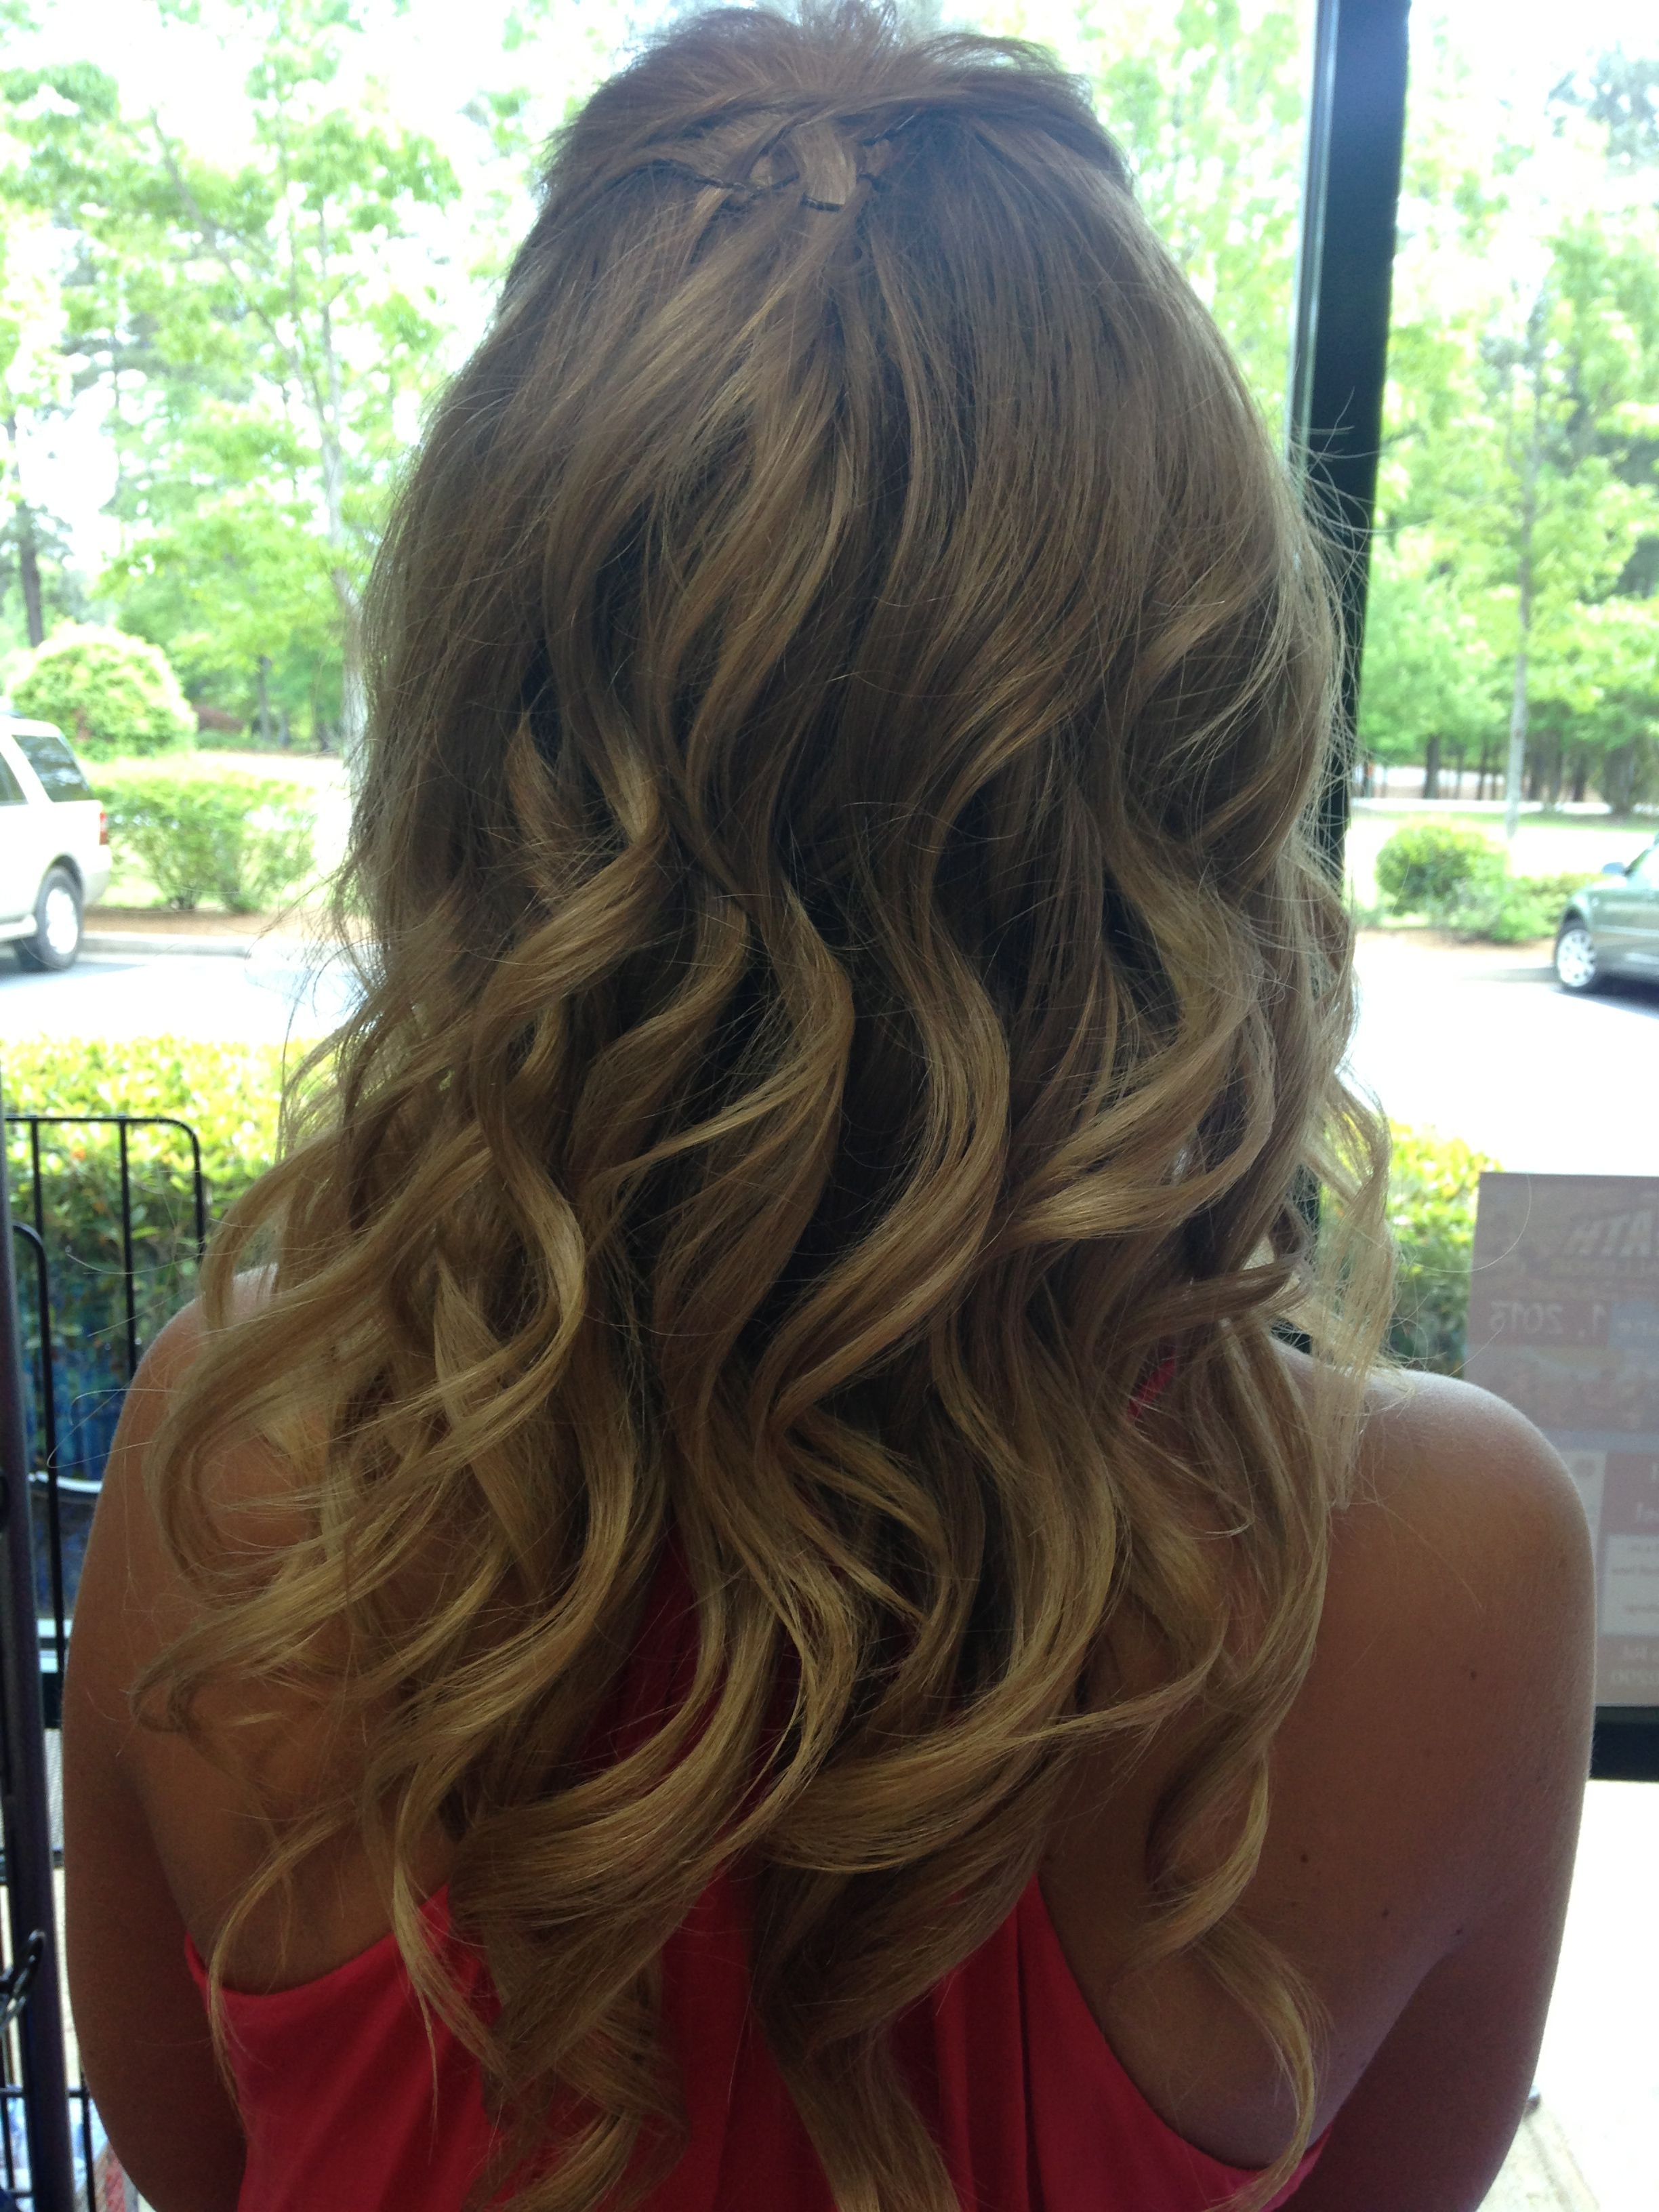 Curly prom hair